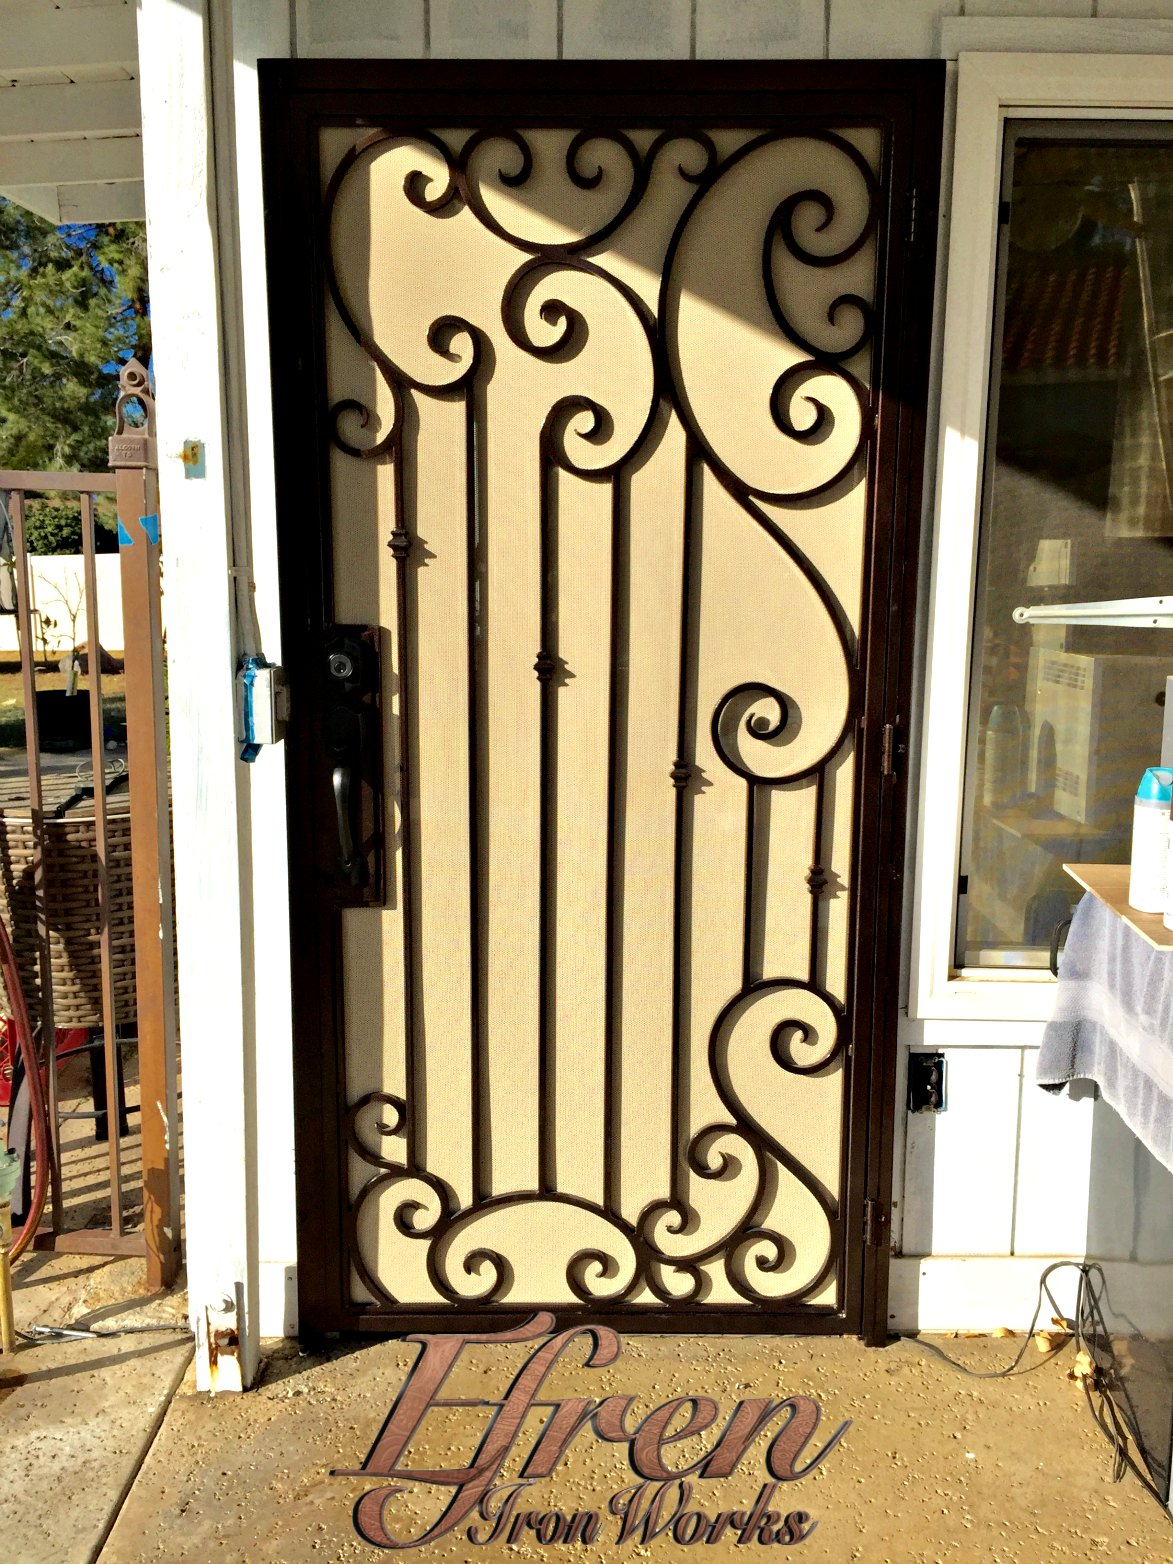 Charmant Artistic Wrought Iron Works